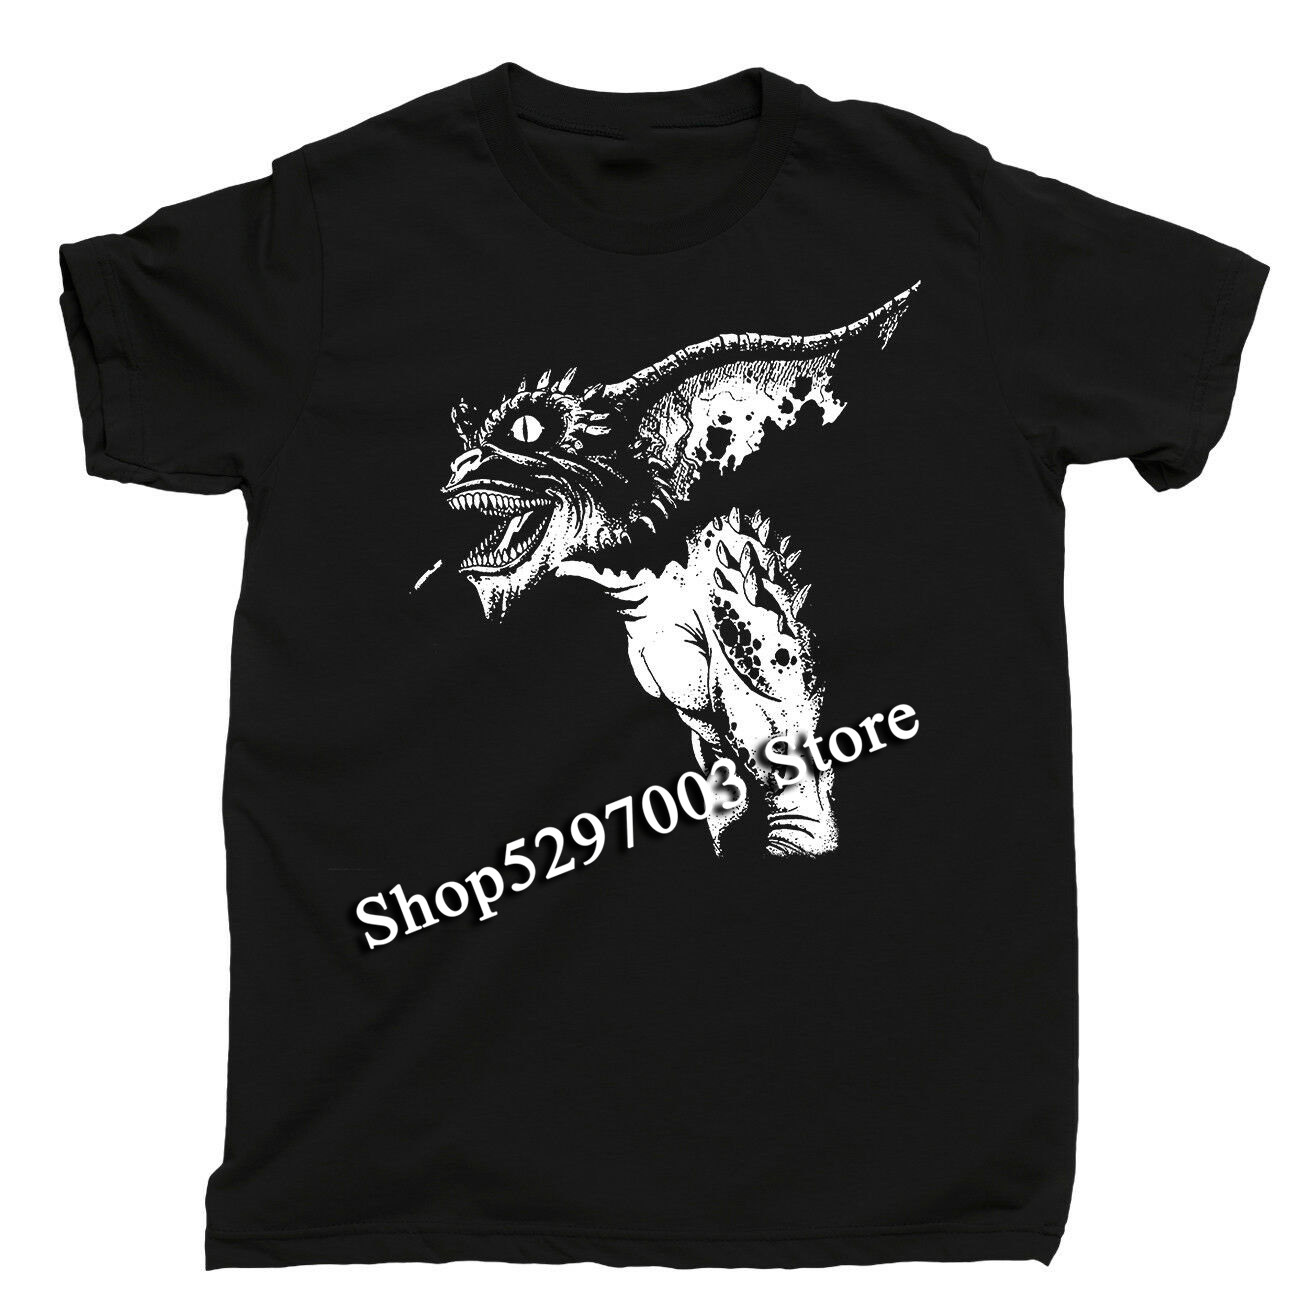 Gremlins 2 T Shirt New Batch 3 Rules 1980S Scary Horror Movies Dvd Blu Ray Tee Harajuku Tee Shirt image